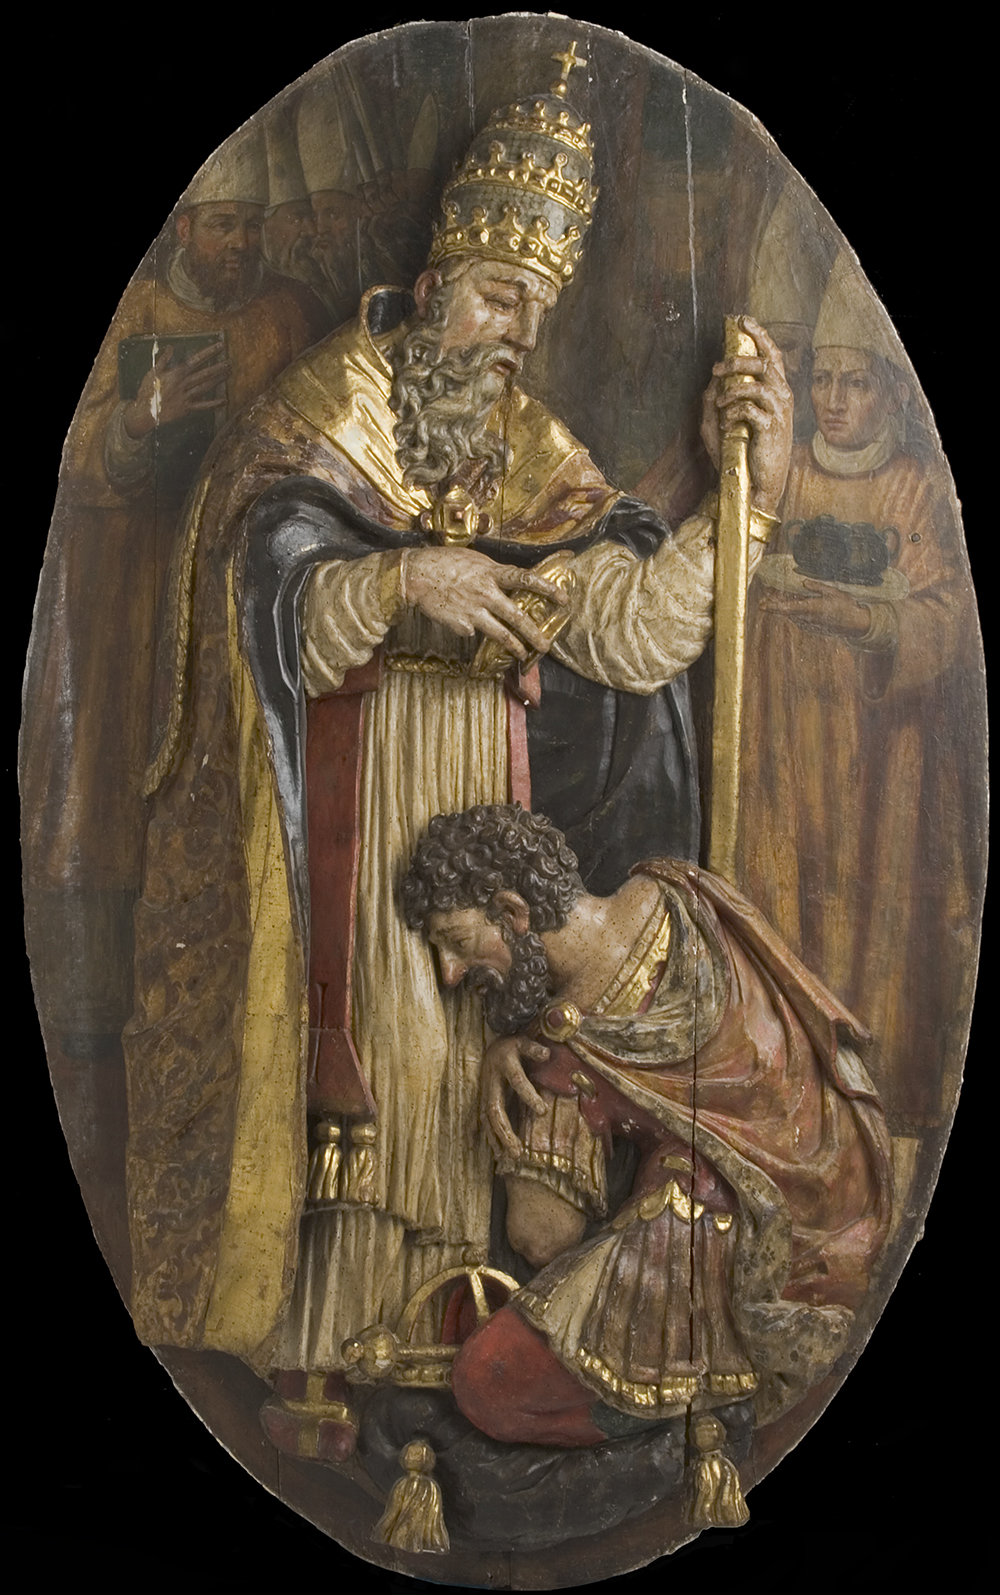 Pope Blessing Constantine, c. 1500. The Los Angeles County Museum of Art, Gift of Max and Elinor Toberoff.